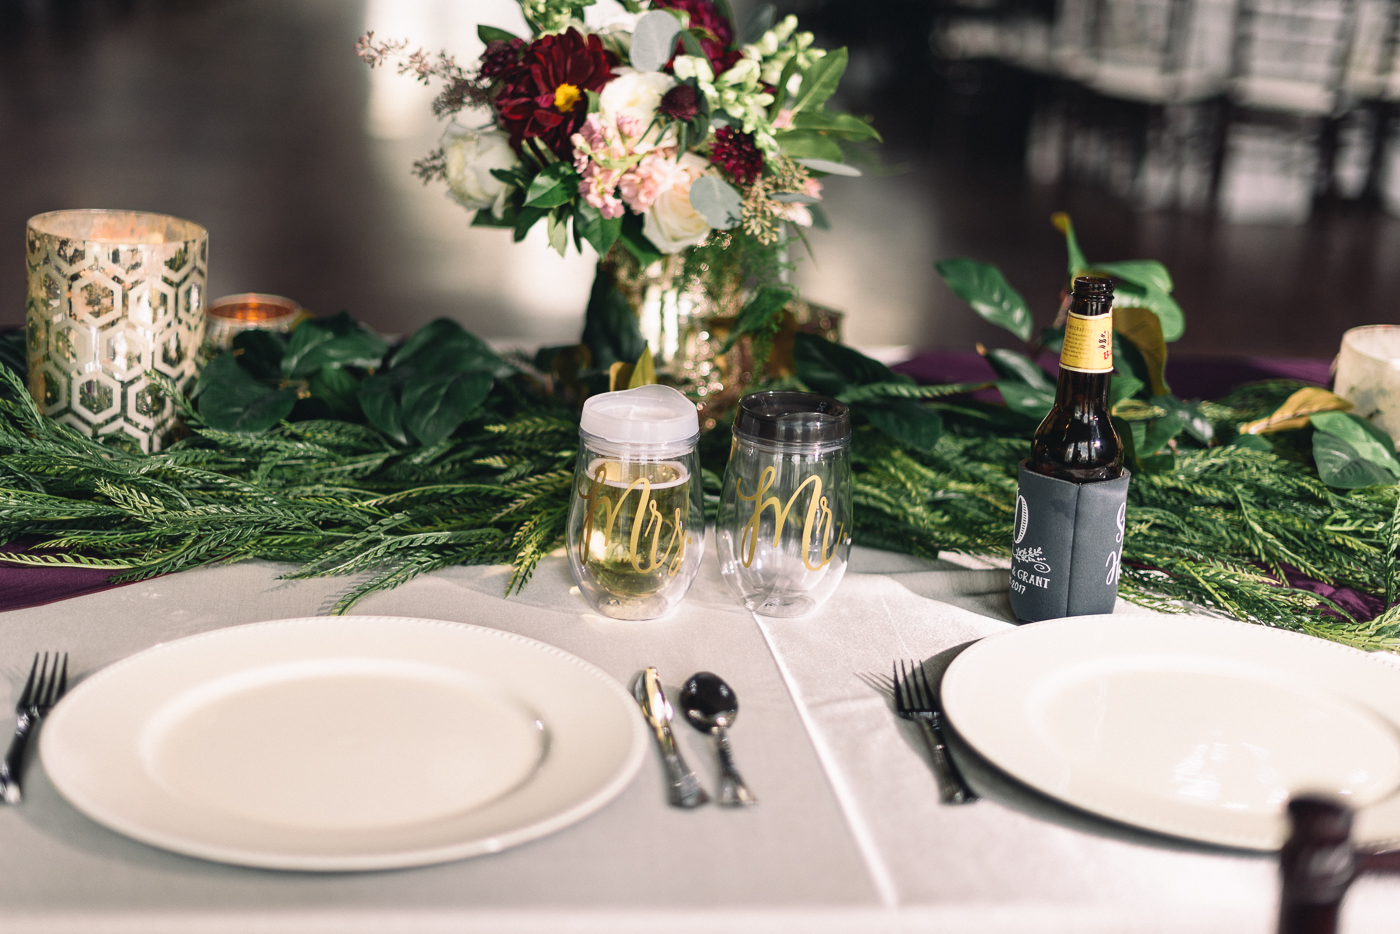 wedding reception place setting shiner bock beer wedding flowers mr. and mrs. wine sippy cup